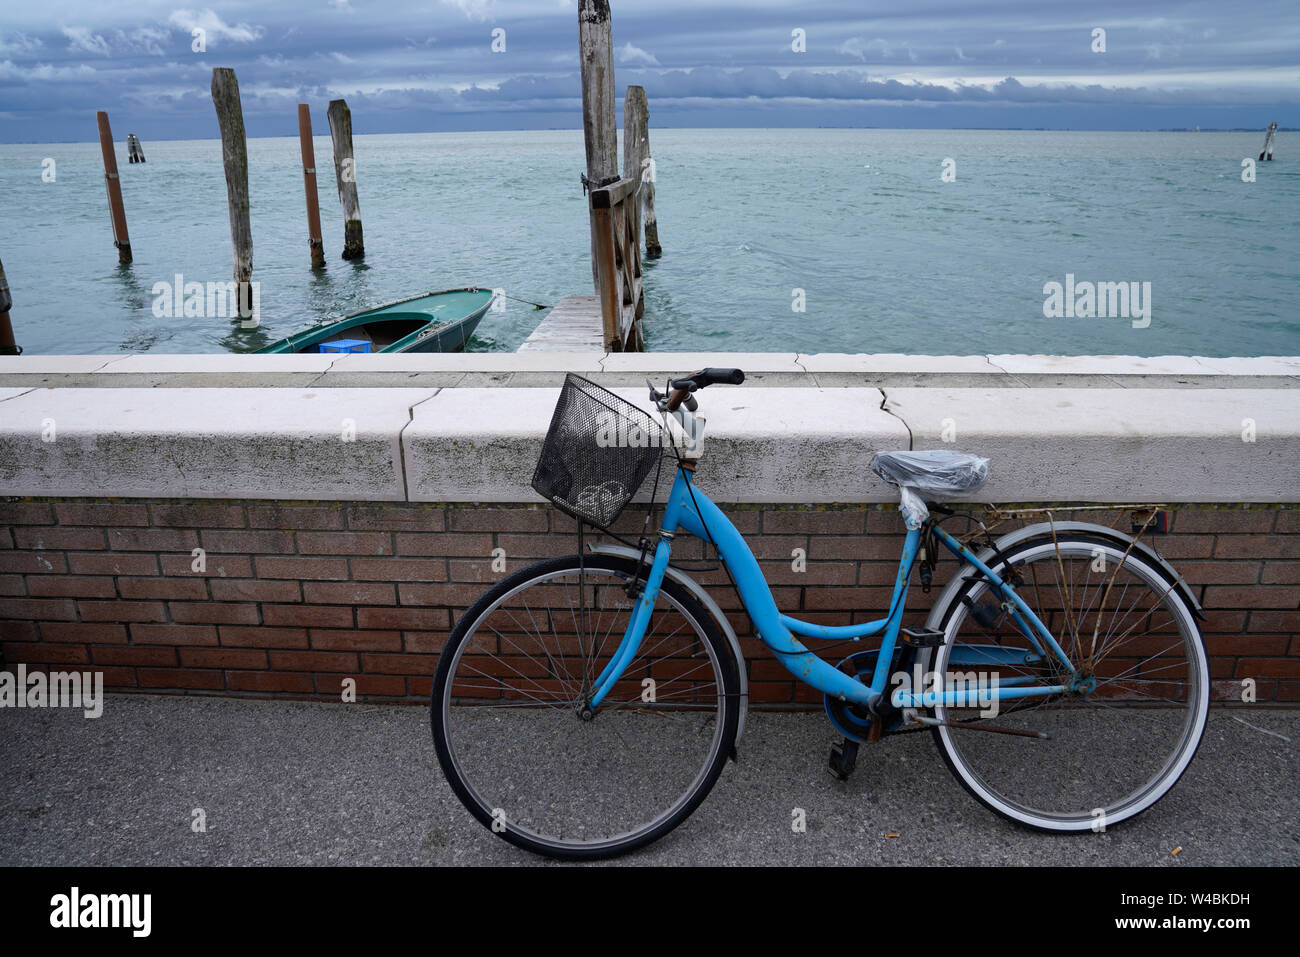 Still life by bike at the sea Stock Photo